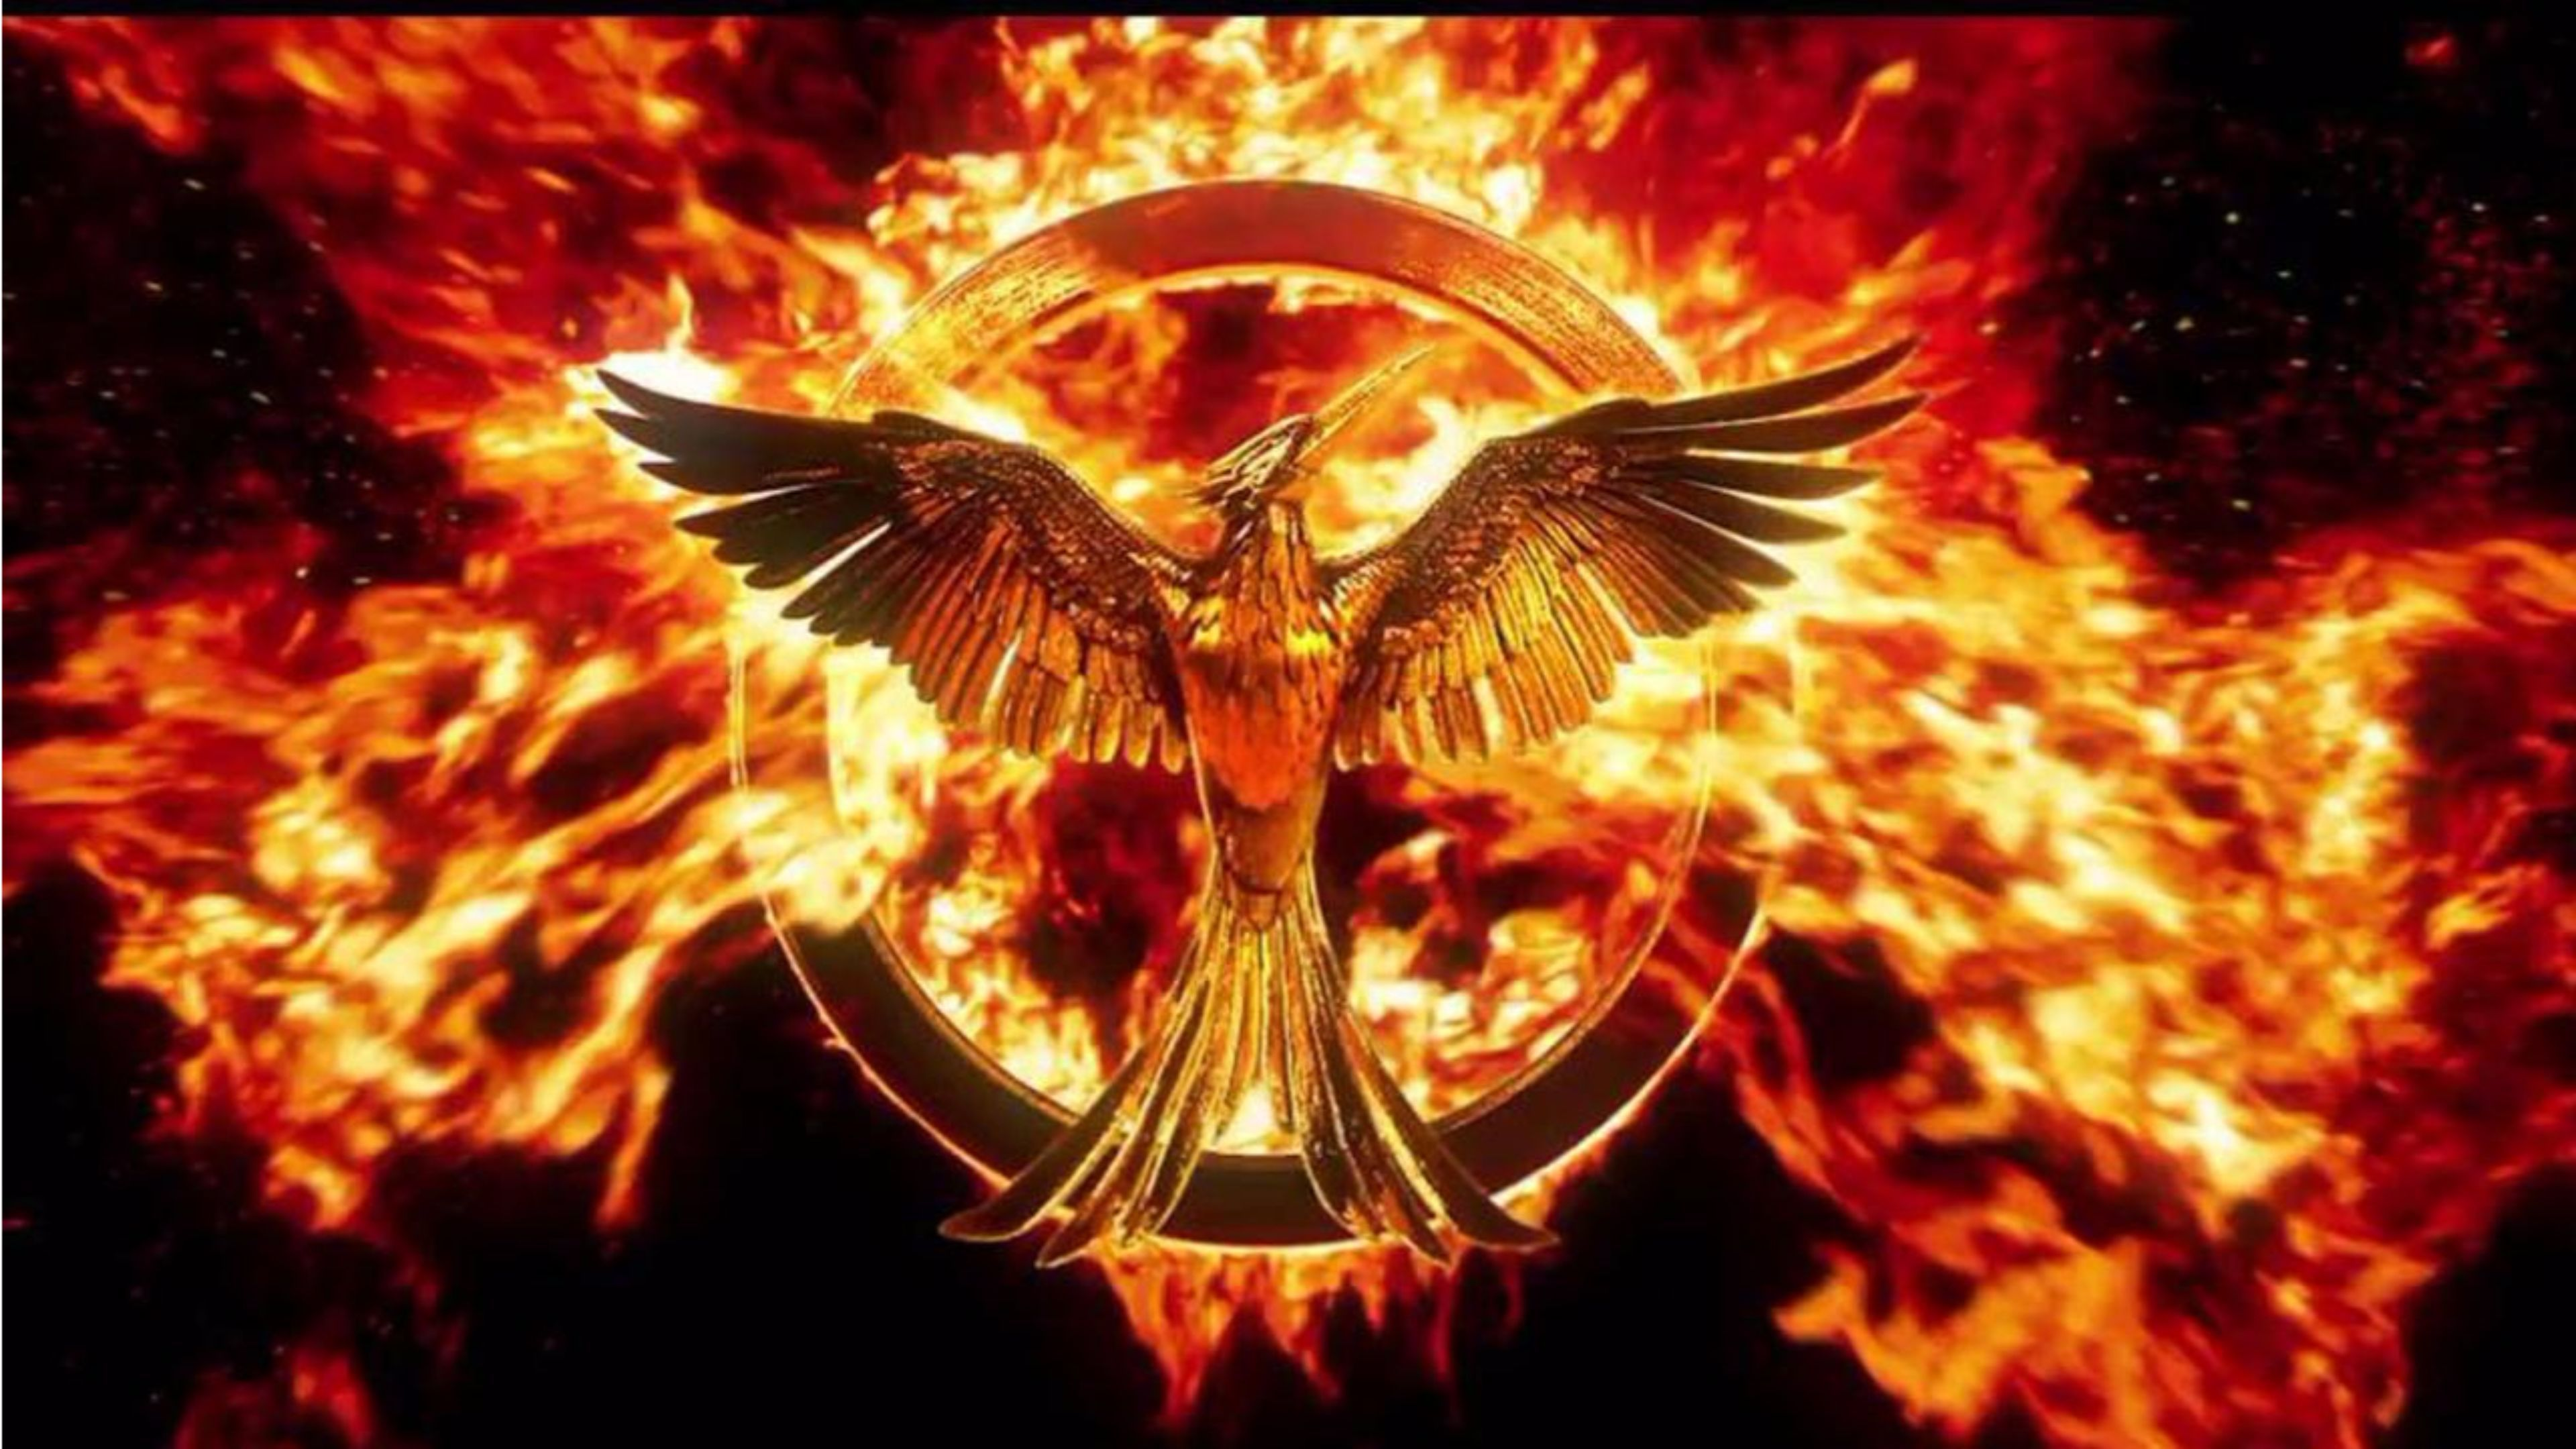 The Hunger Games Wallpapers Top Free The Hunger Games